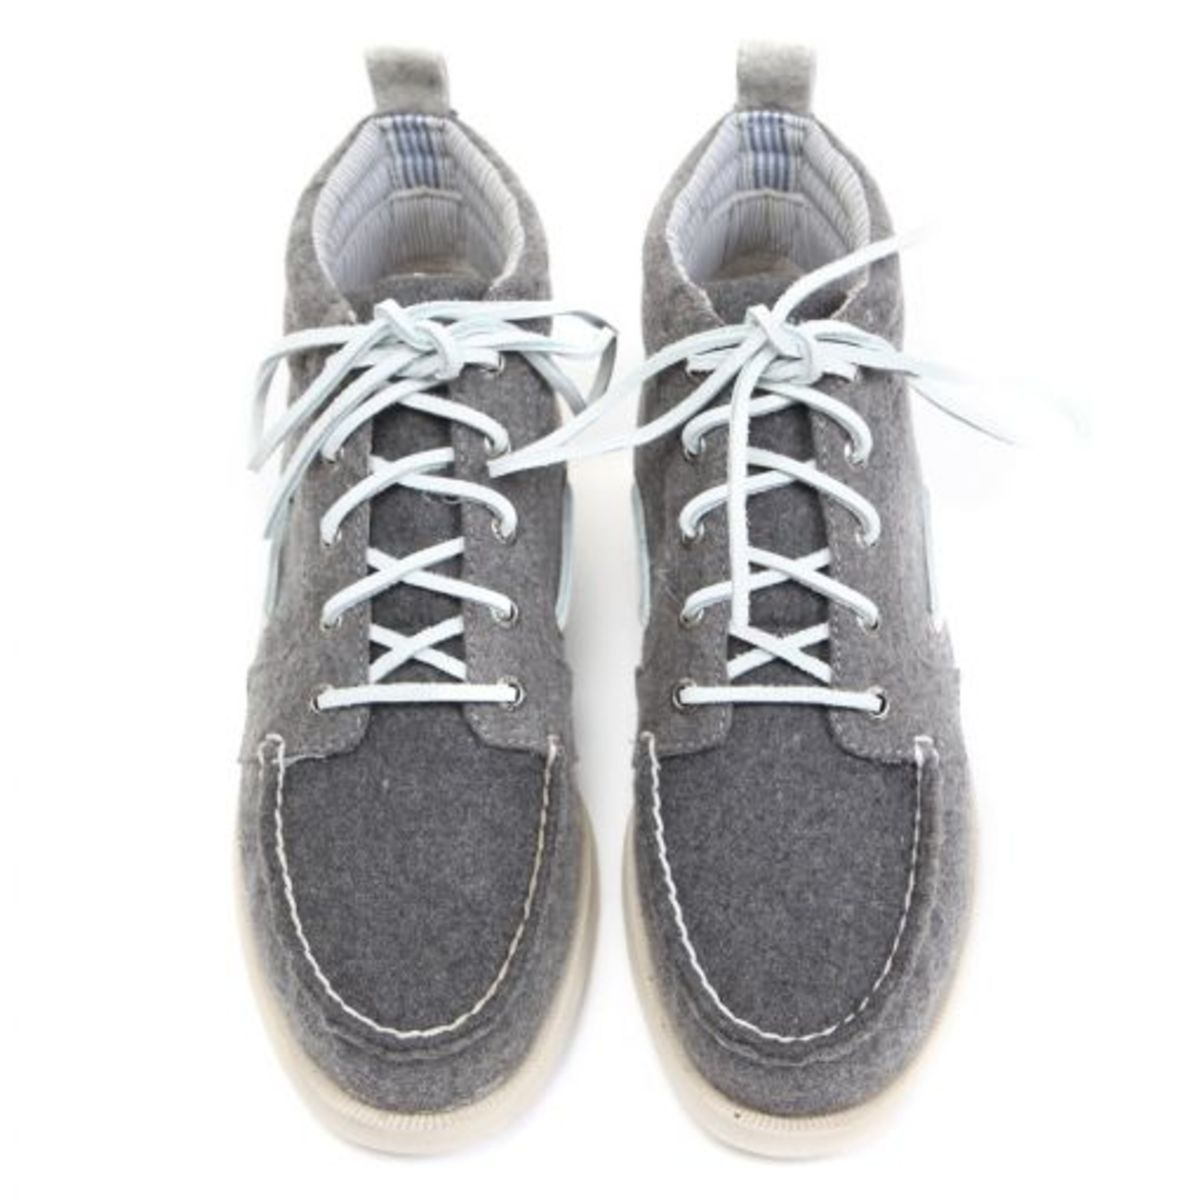 band_of_outsider_sperry_topsider_10